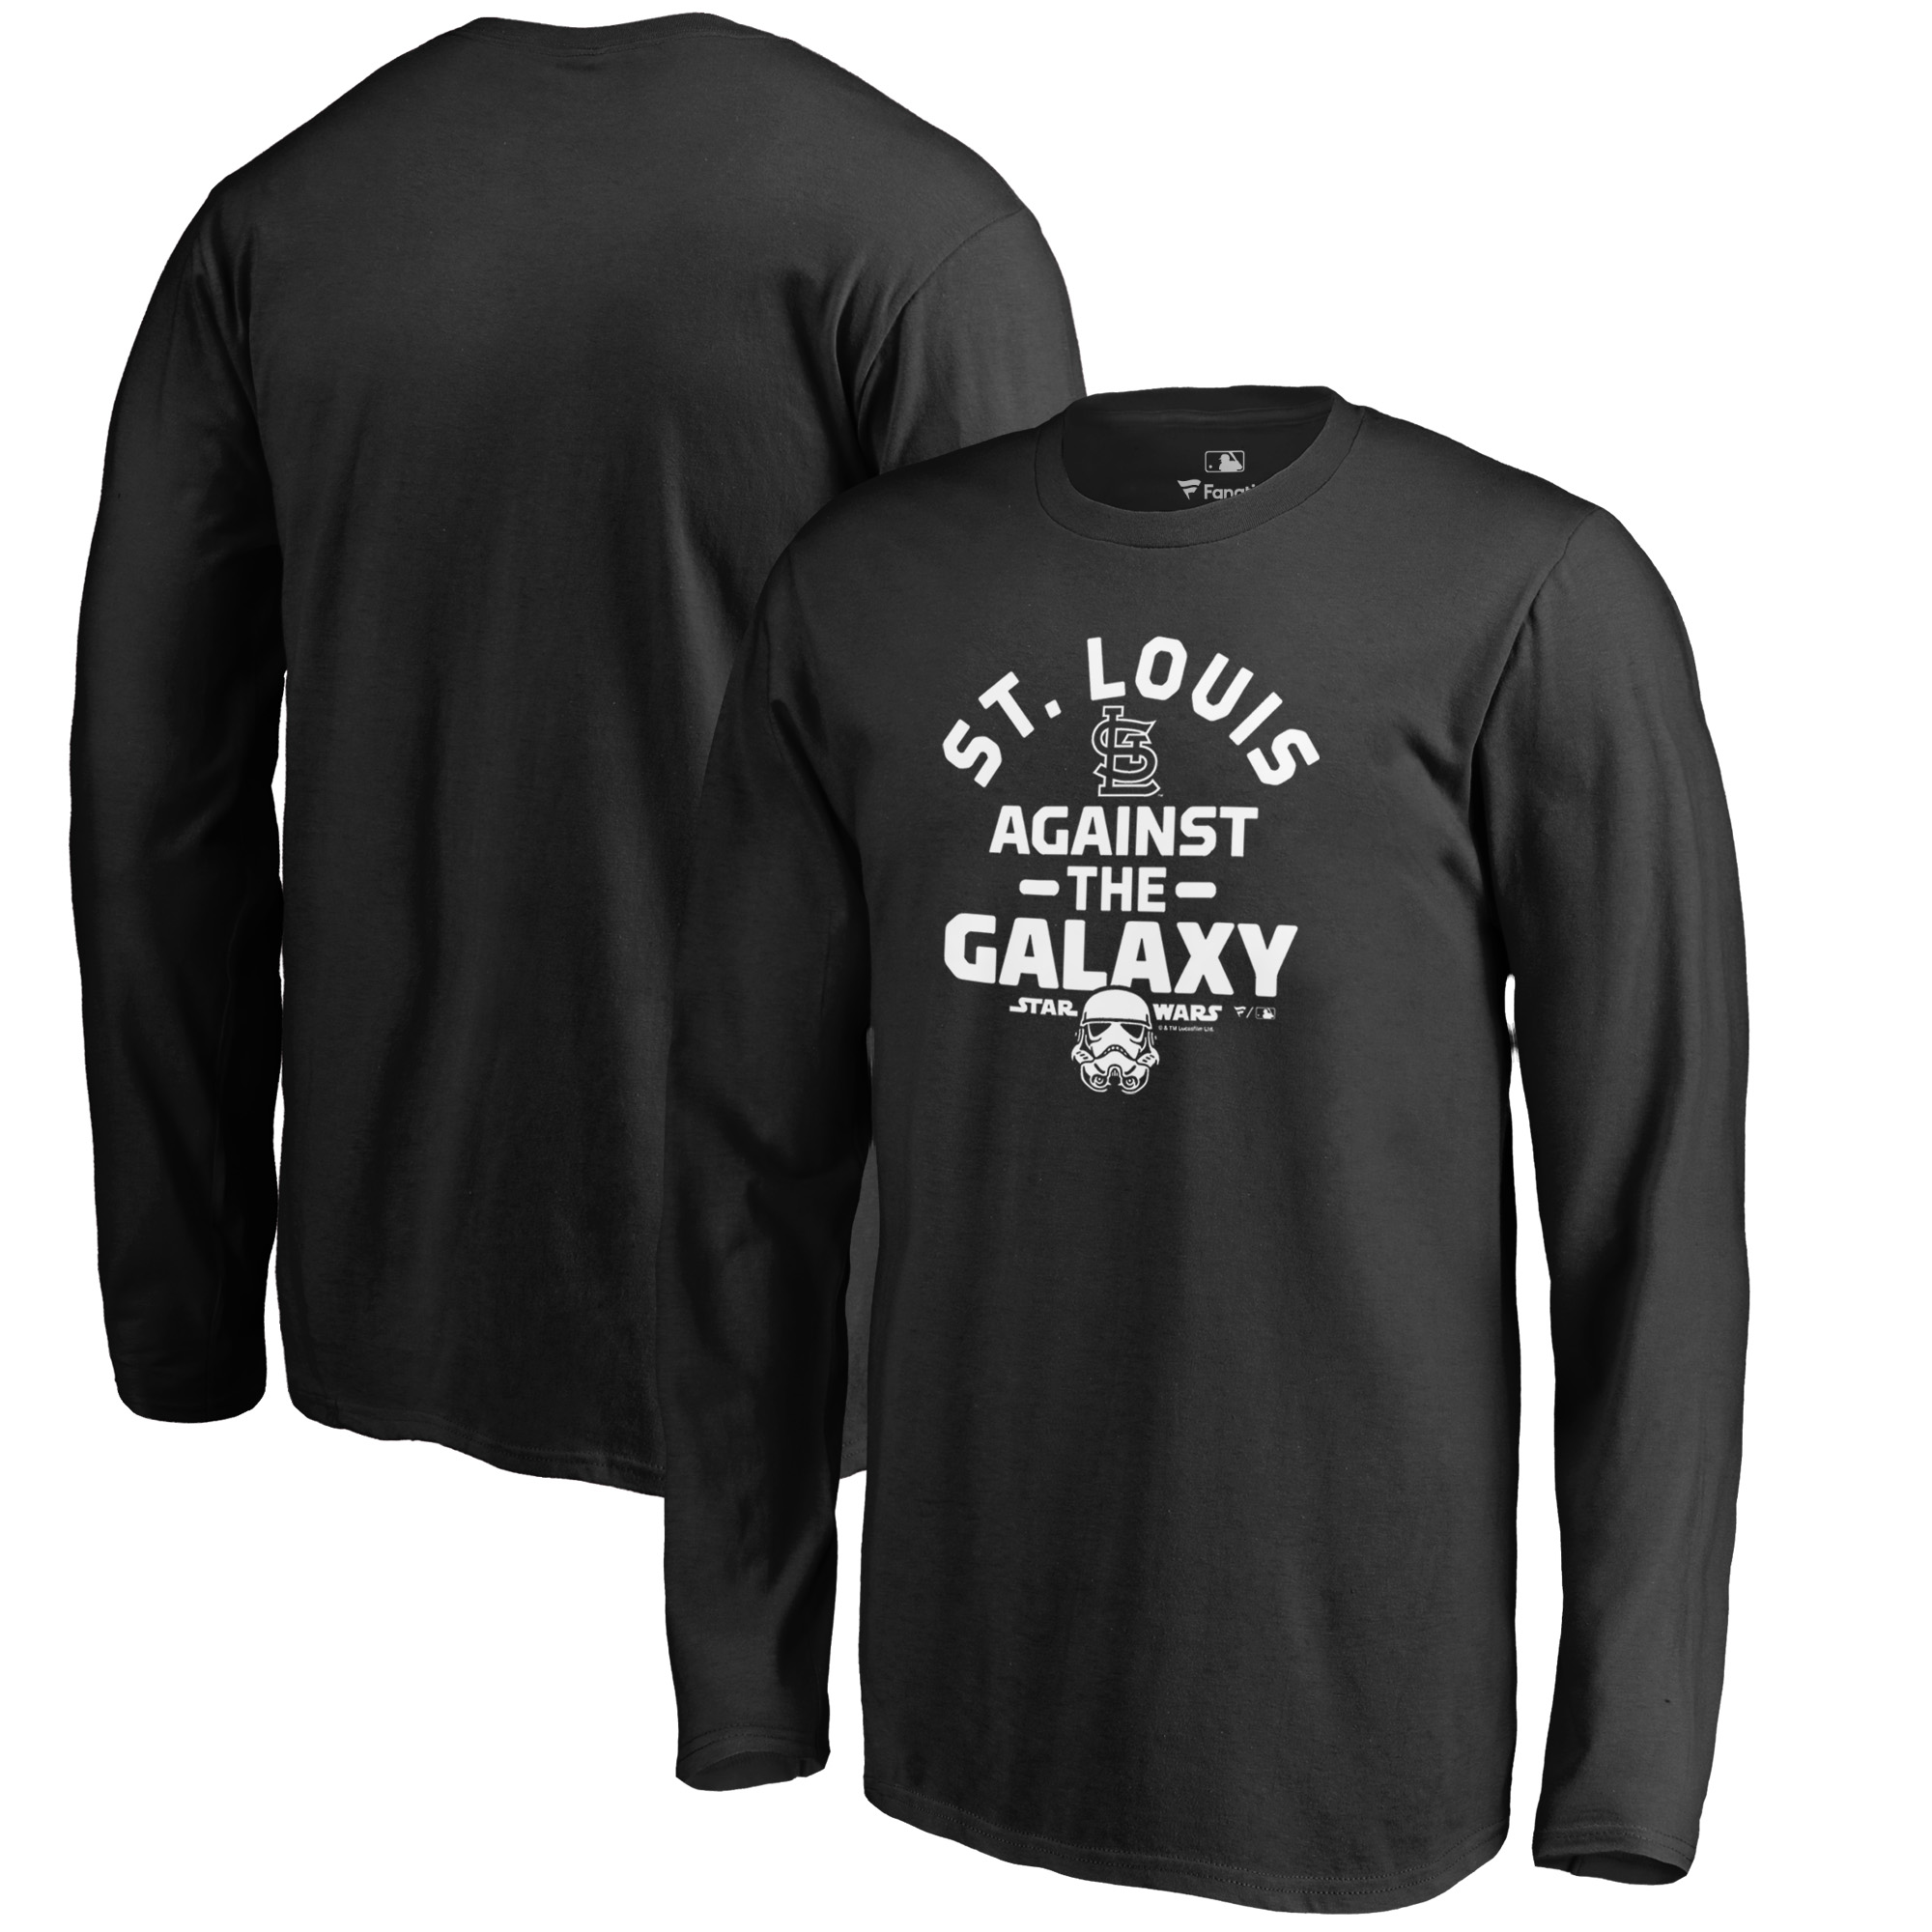 St. Louis Cardinals Fanatics Branded Youth MLB Star Wars Against The Galaxy Long Sleeve T-Shirt - Black